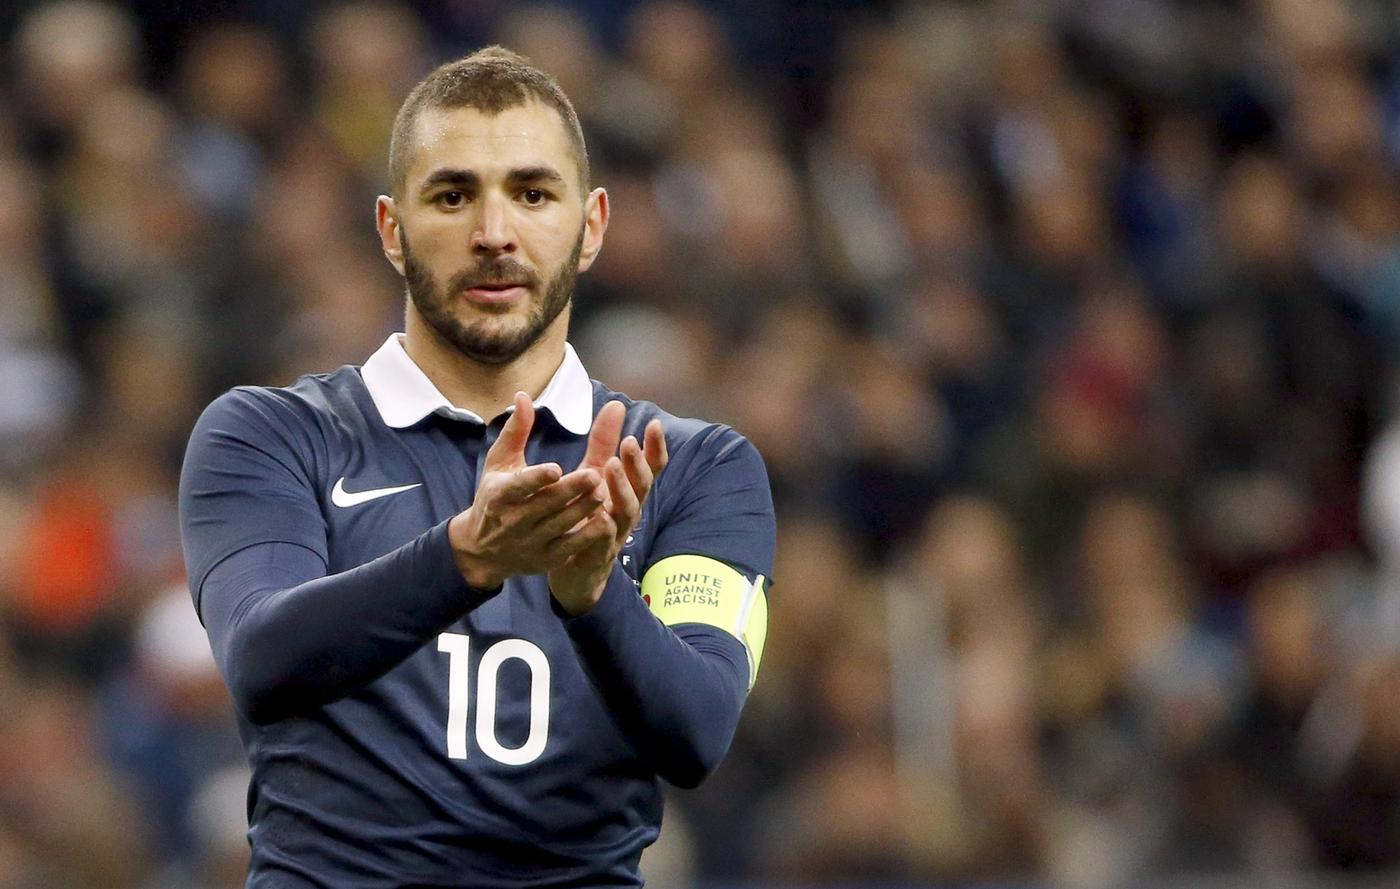 Arsenal are interested in signing Karim Benzema this summer (Picture:Reuters)